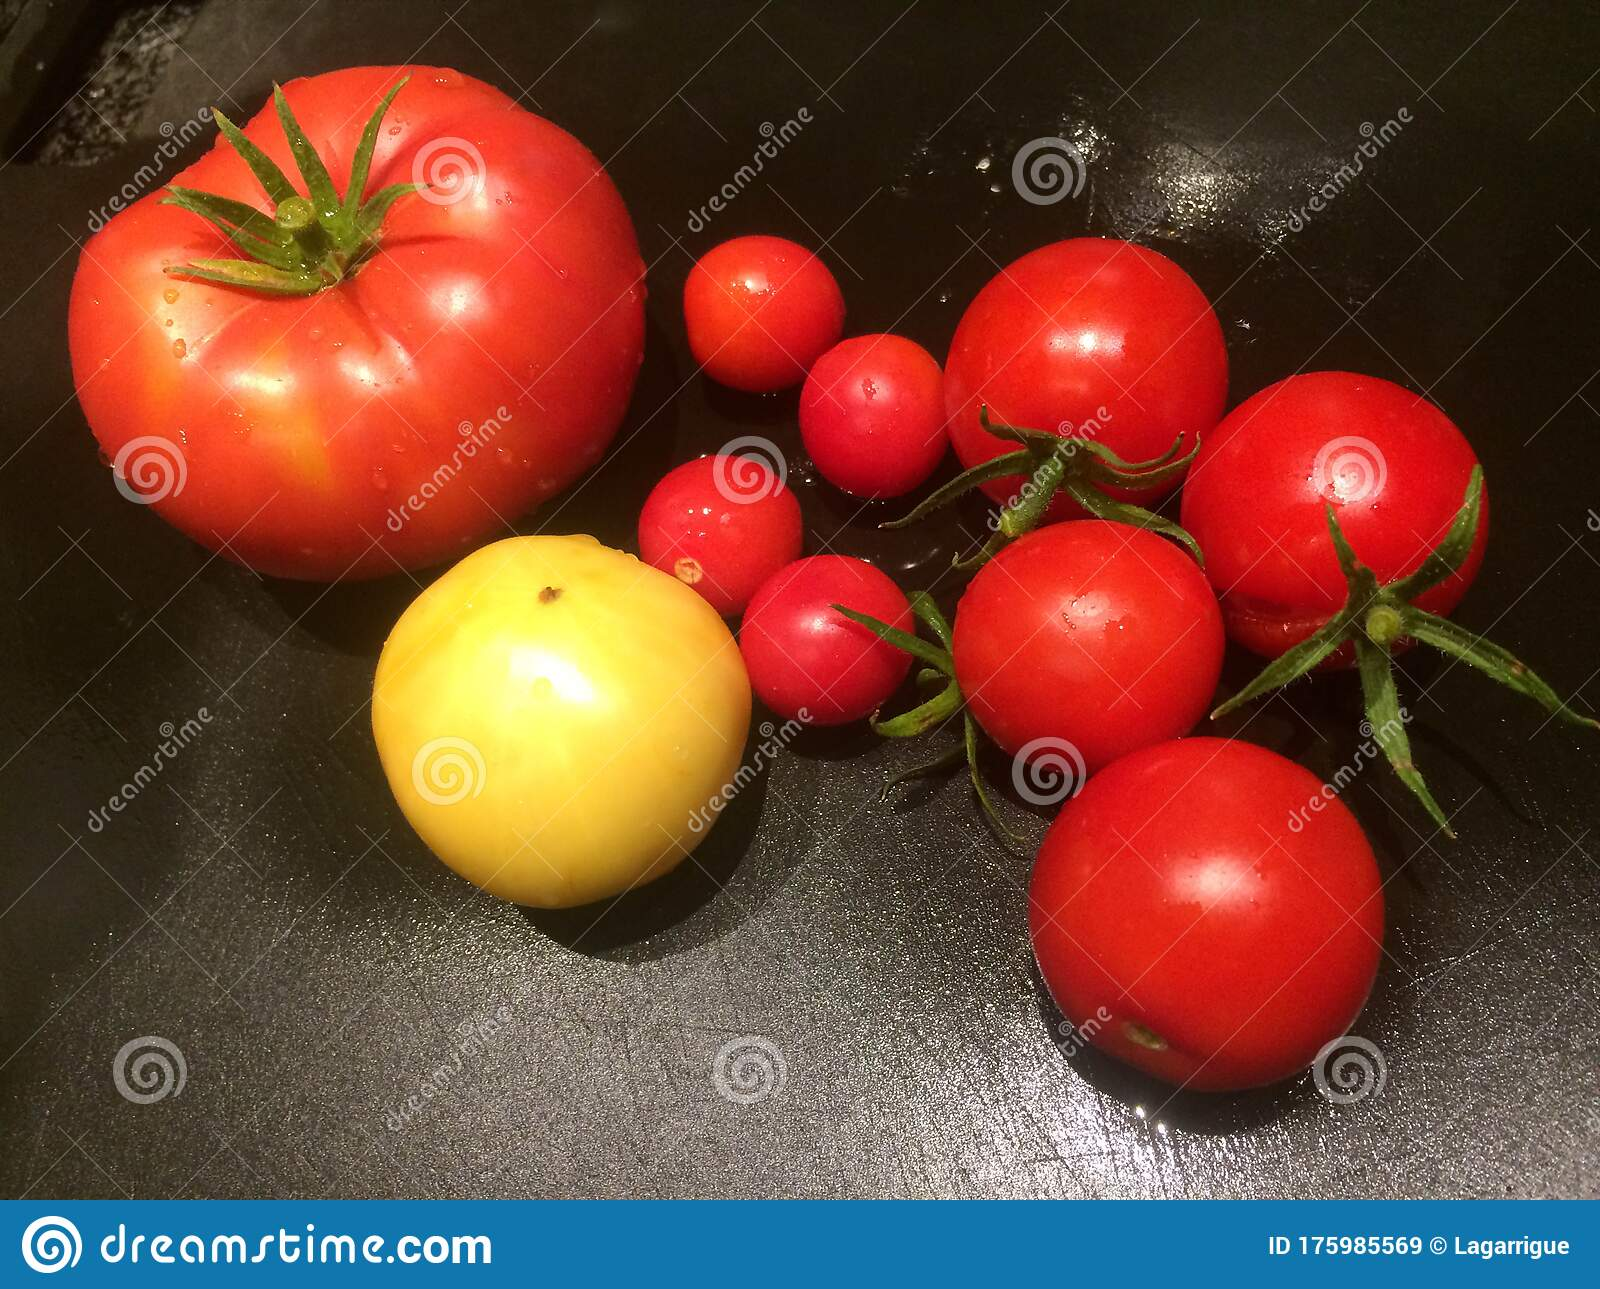 Heirloom Tomatoes Red And Yellow Arrangement Of Different Sizes